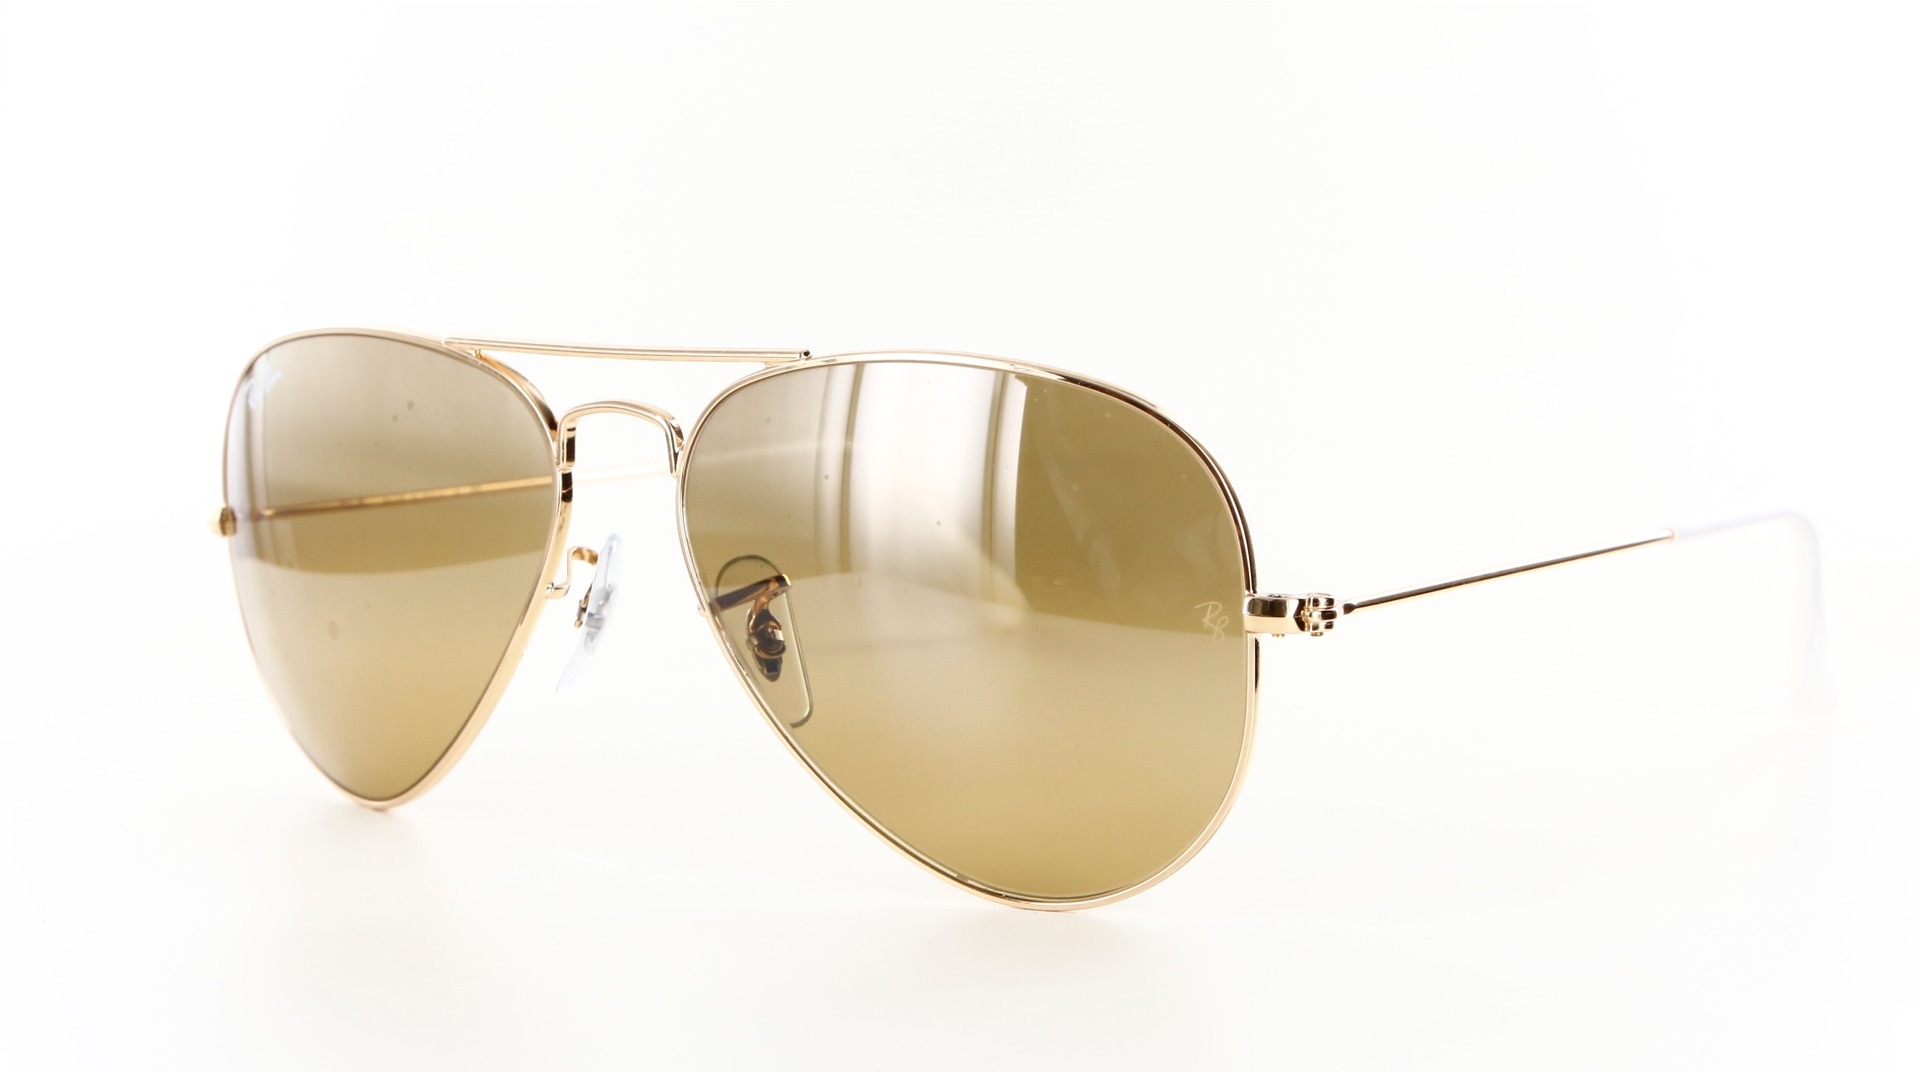 Ray-Ban - ref: 60651